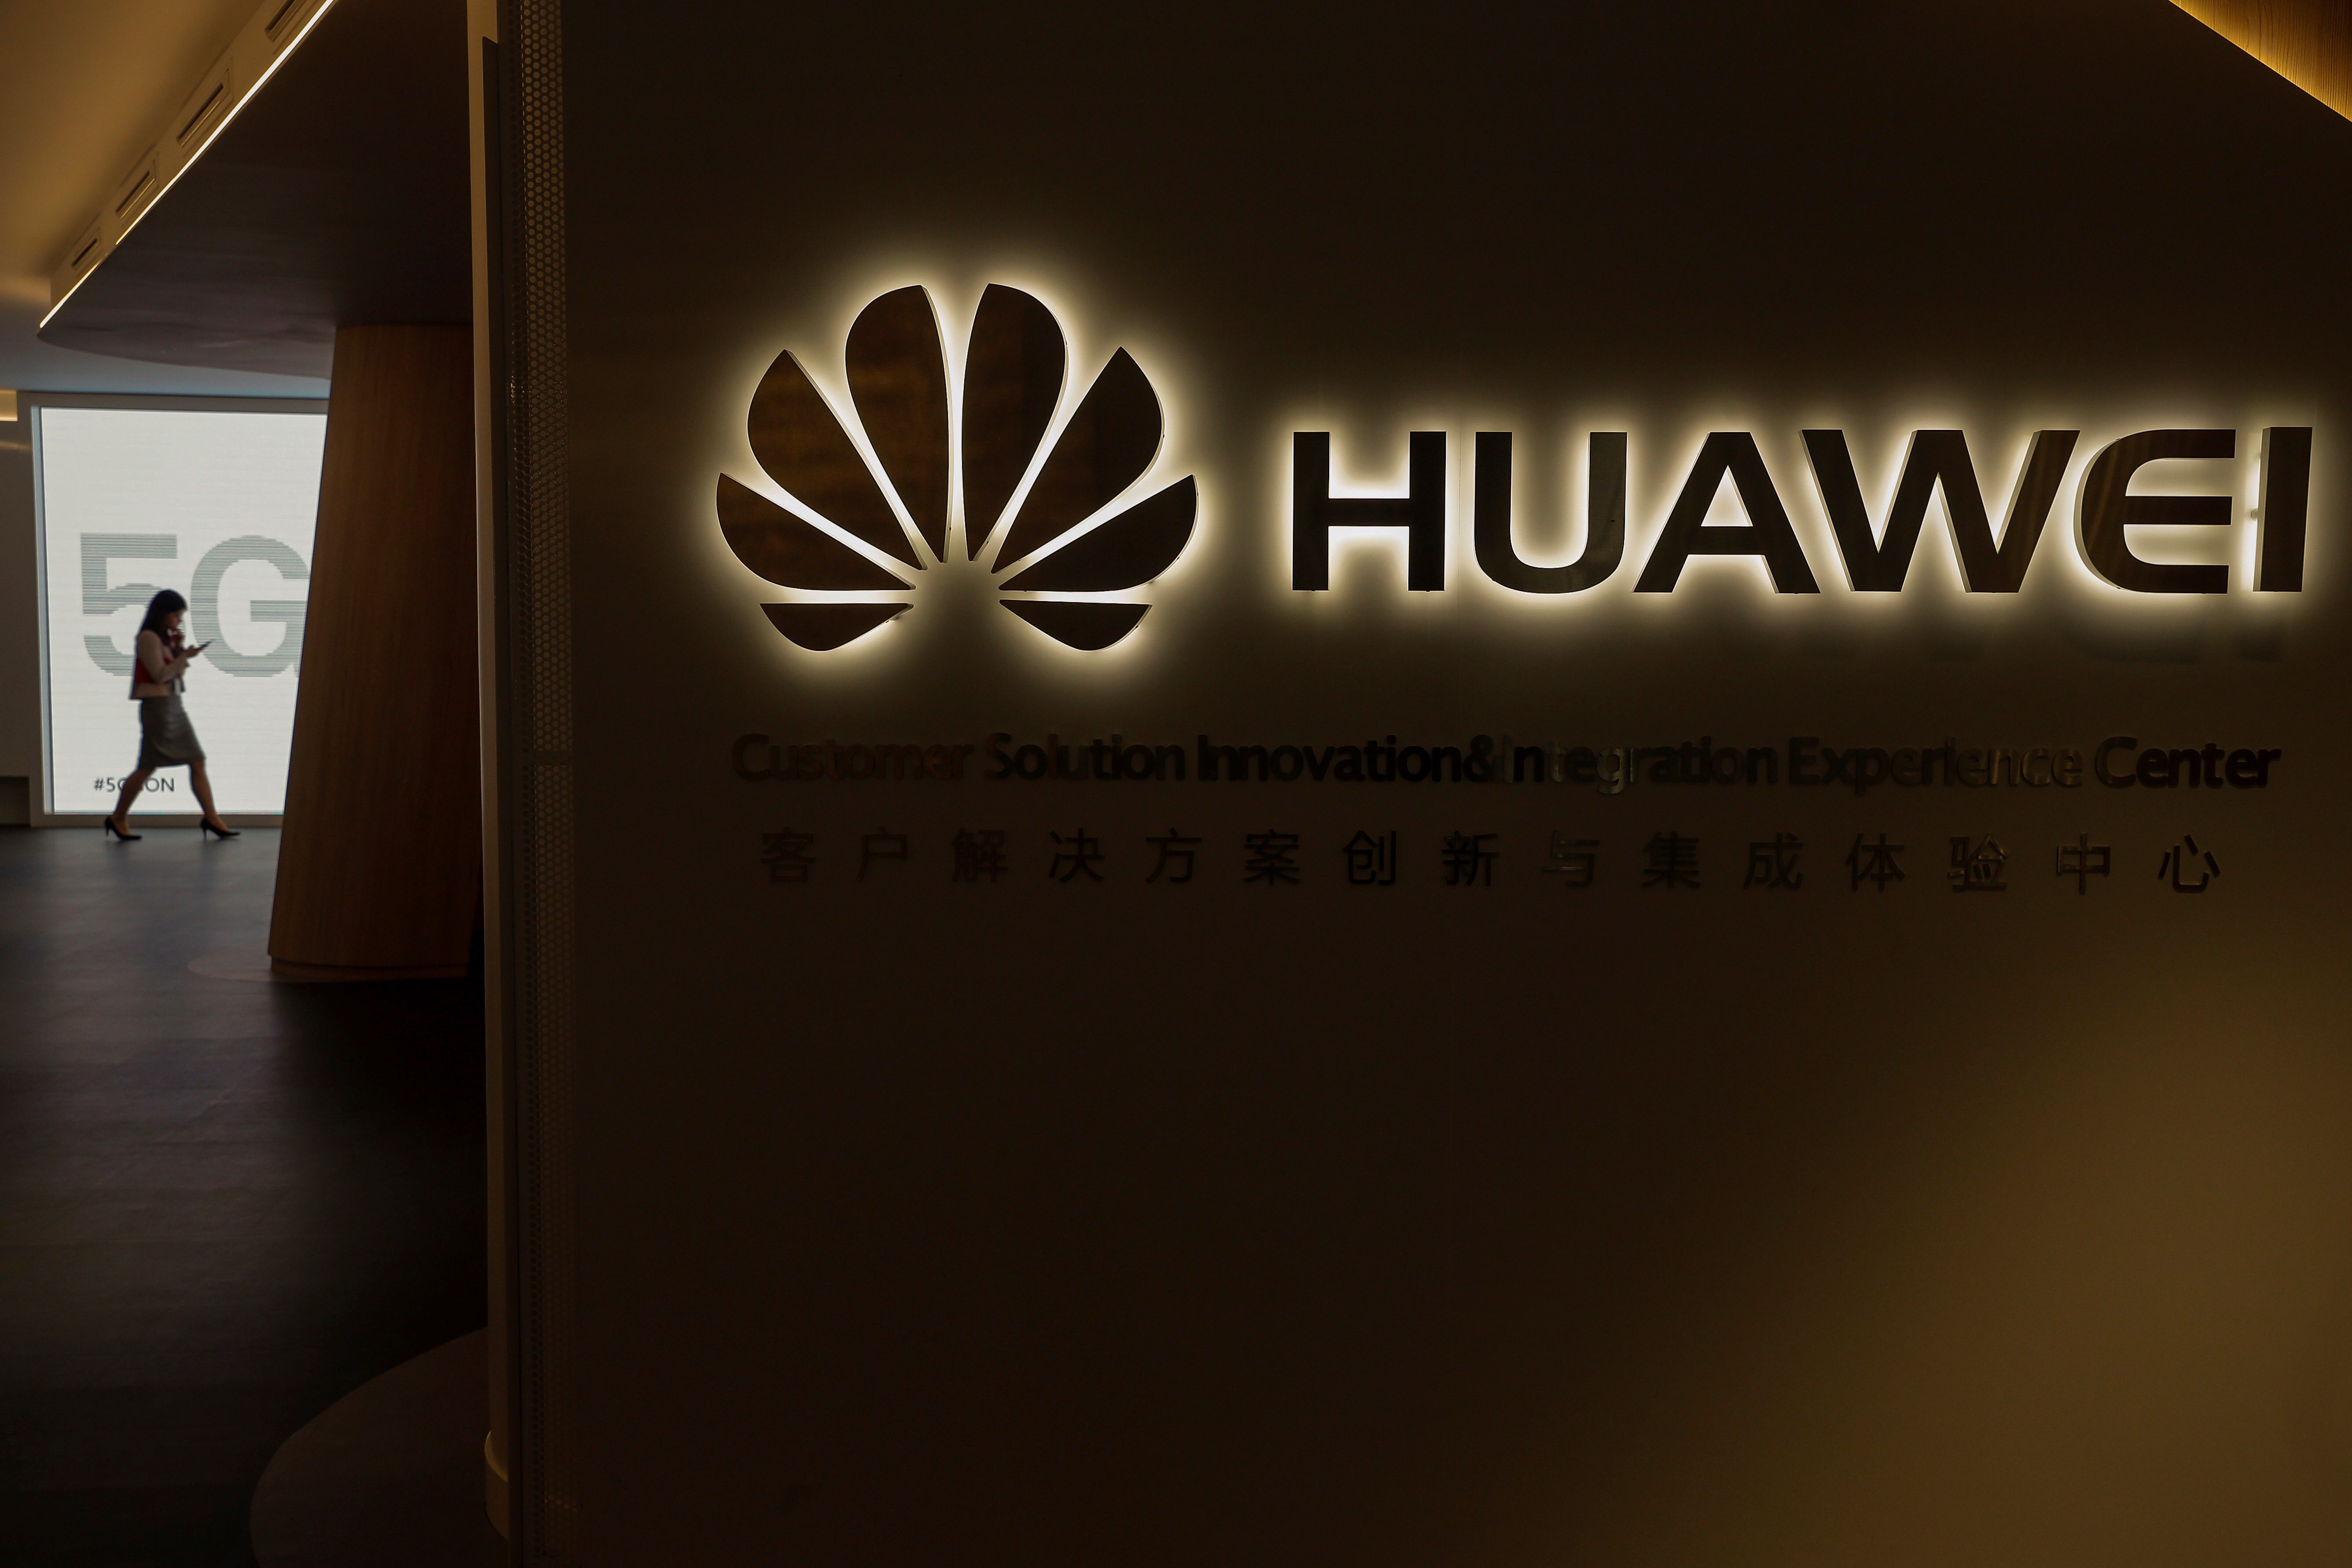 Huawei accuses former manager Ronnie Huang of stealing trade secrets